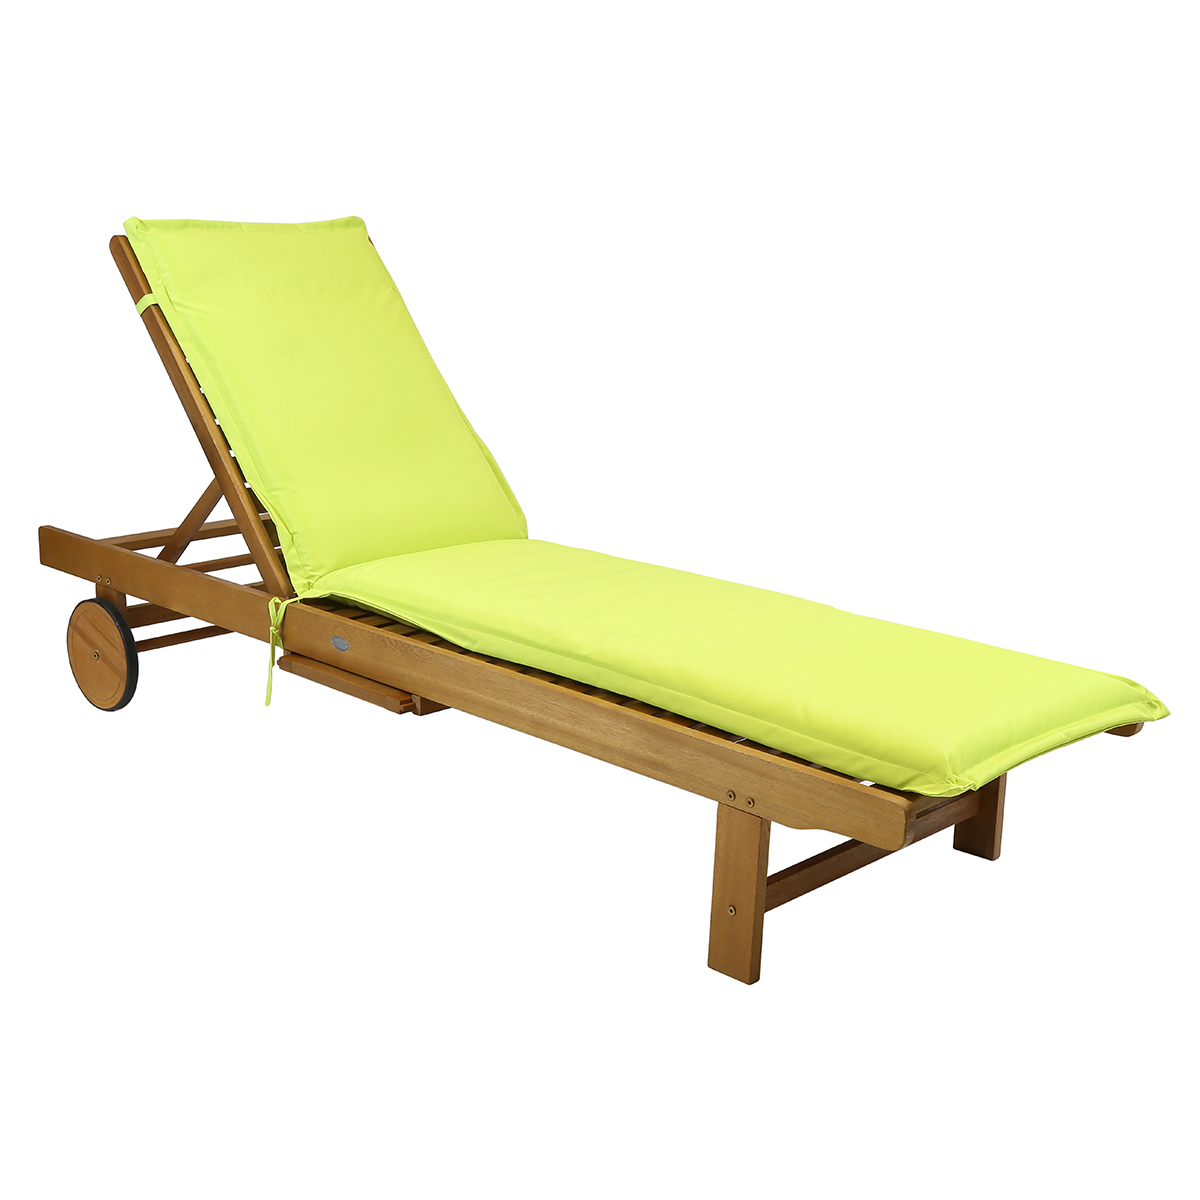 cushion for garden patio sun lounger sunbed green grey